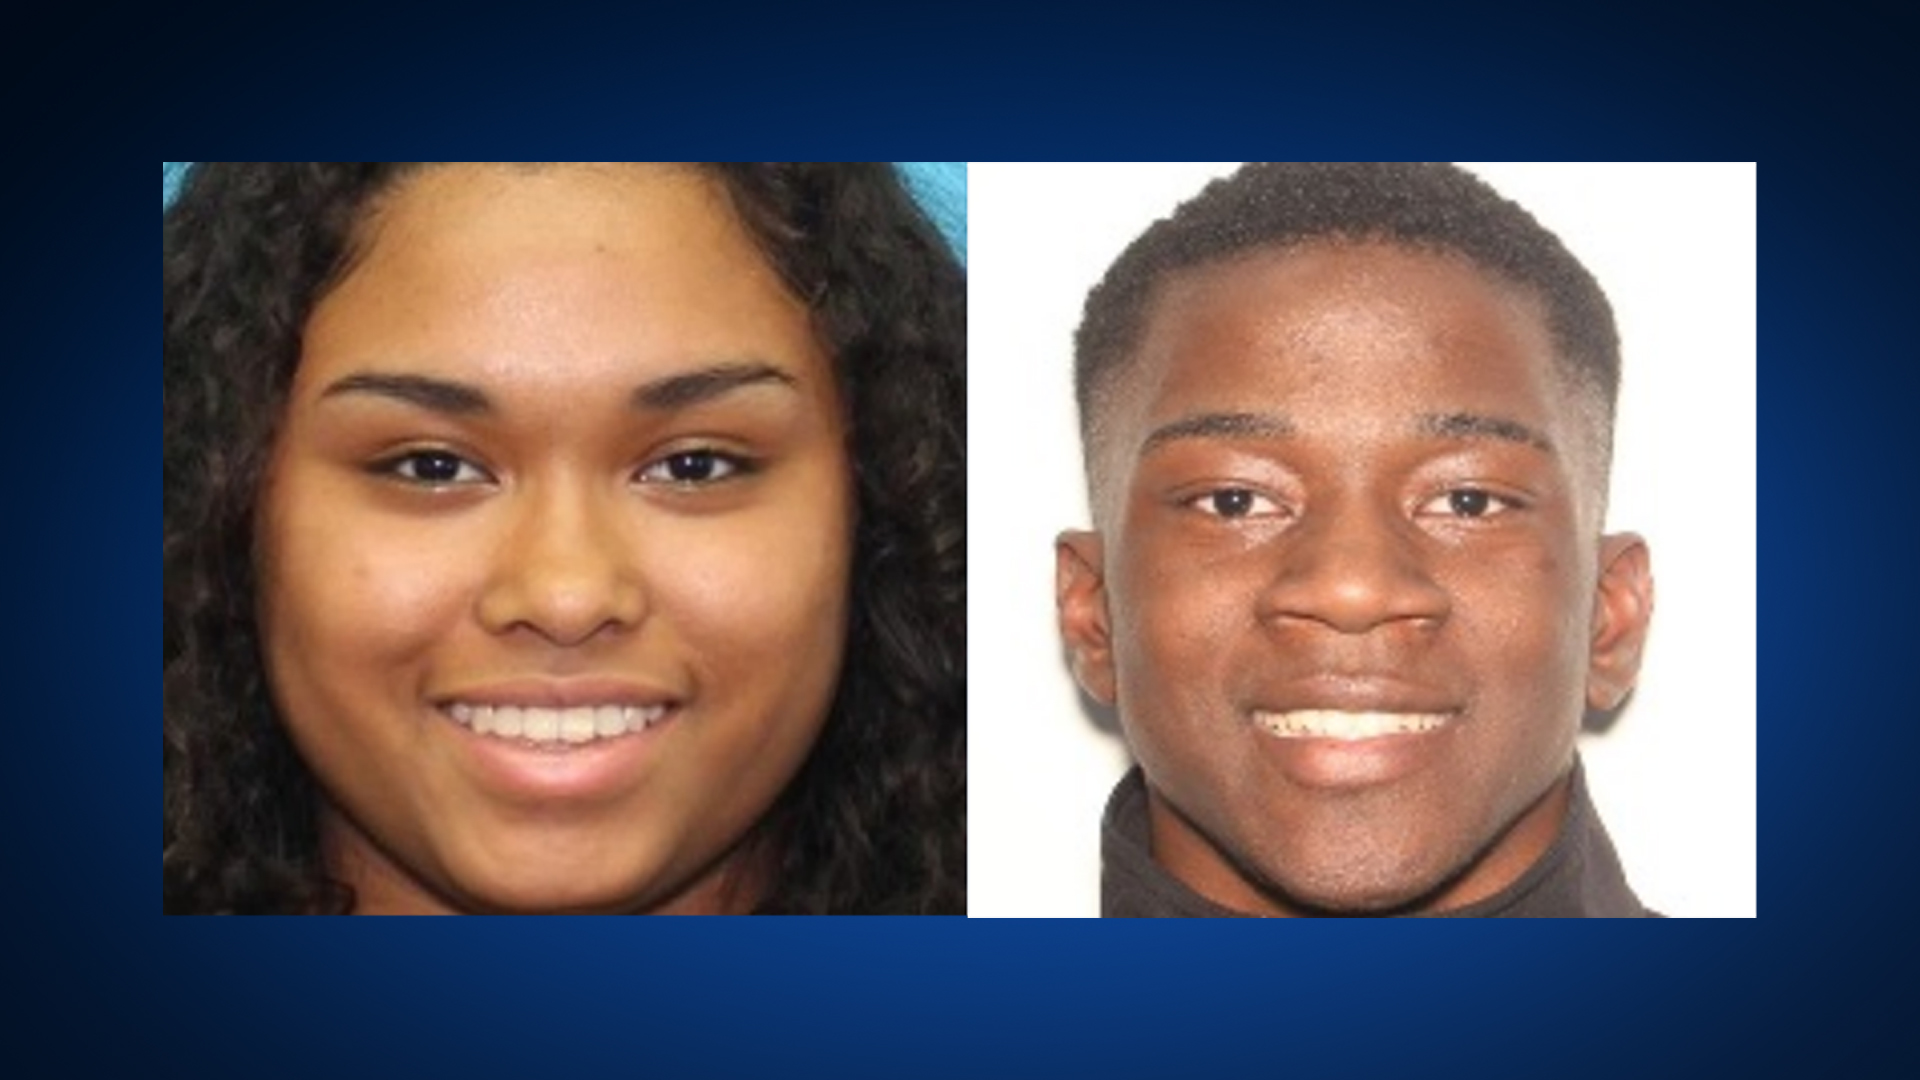 Alicity Erevia, 17, pictured on the left, and Sharieff Sharrieff, 22, pictured on the right (Texas DPS Photos)